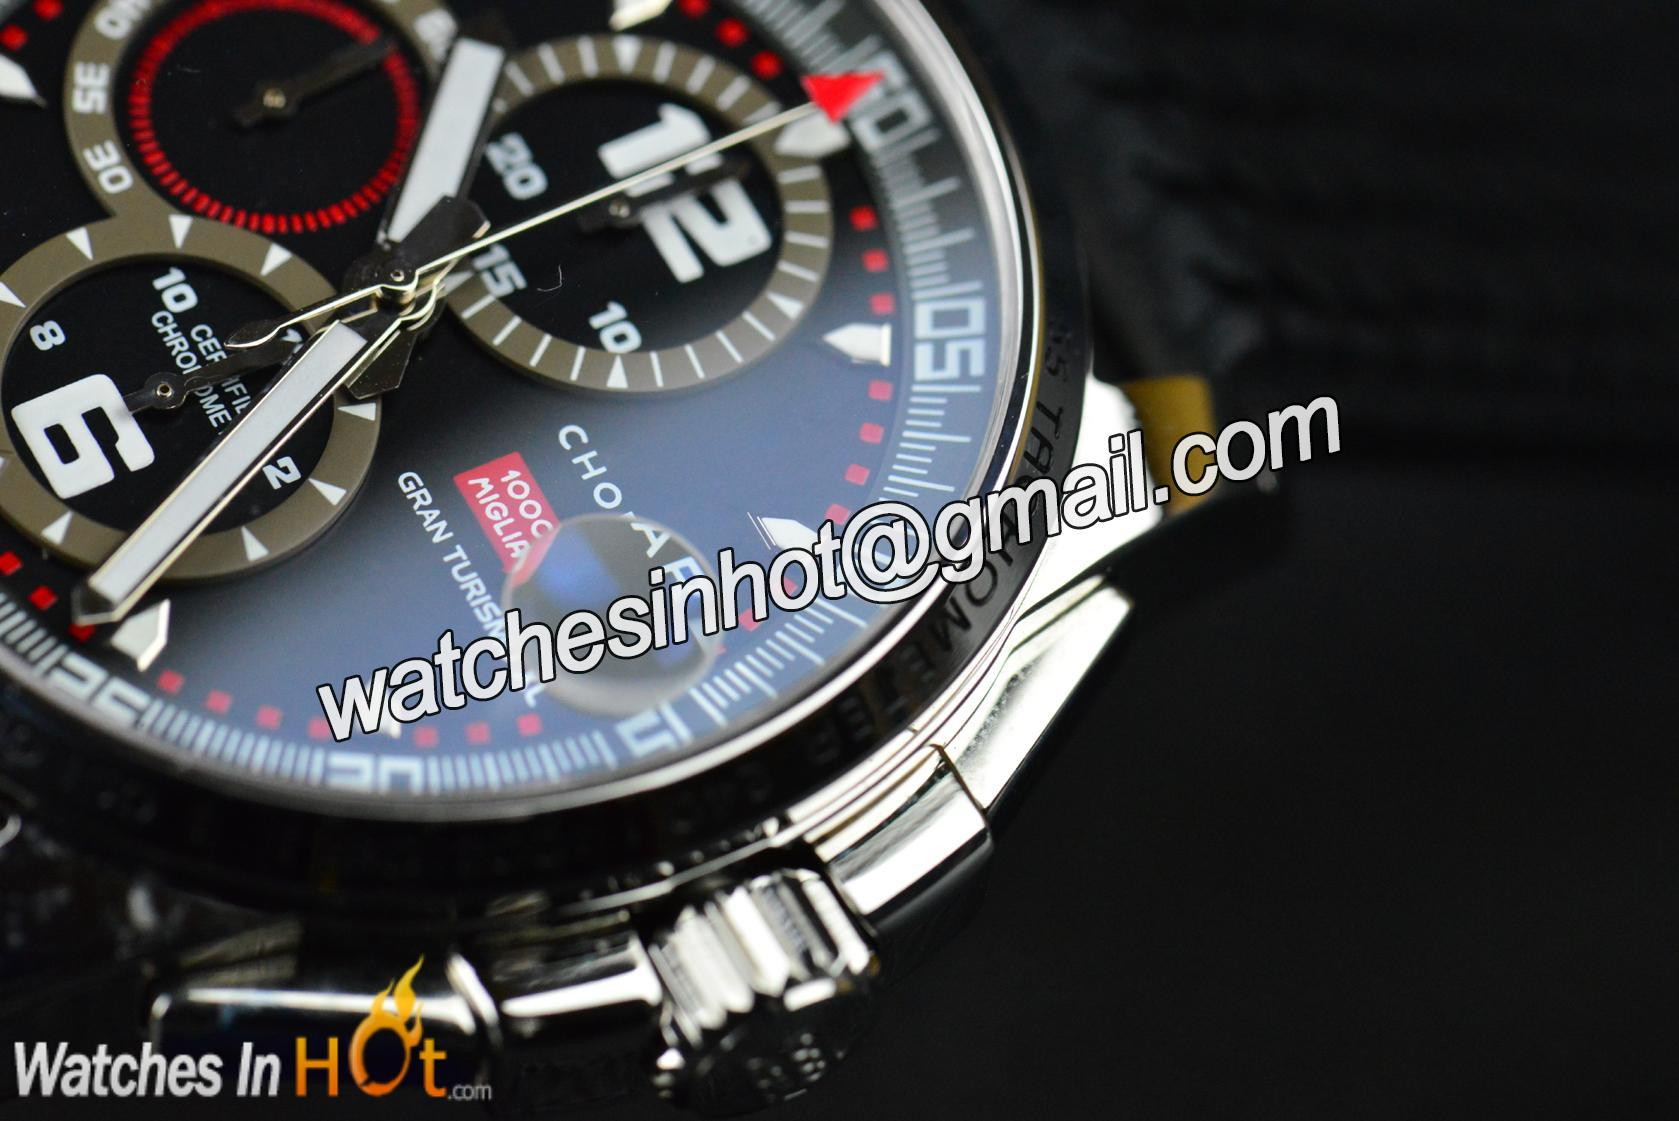 Replica mens watches - Sapphire Crystal Lens On Chopard Mille Miglia Gt Xl Chronograph Mens Replica Watch 16 8459